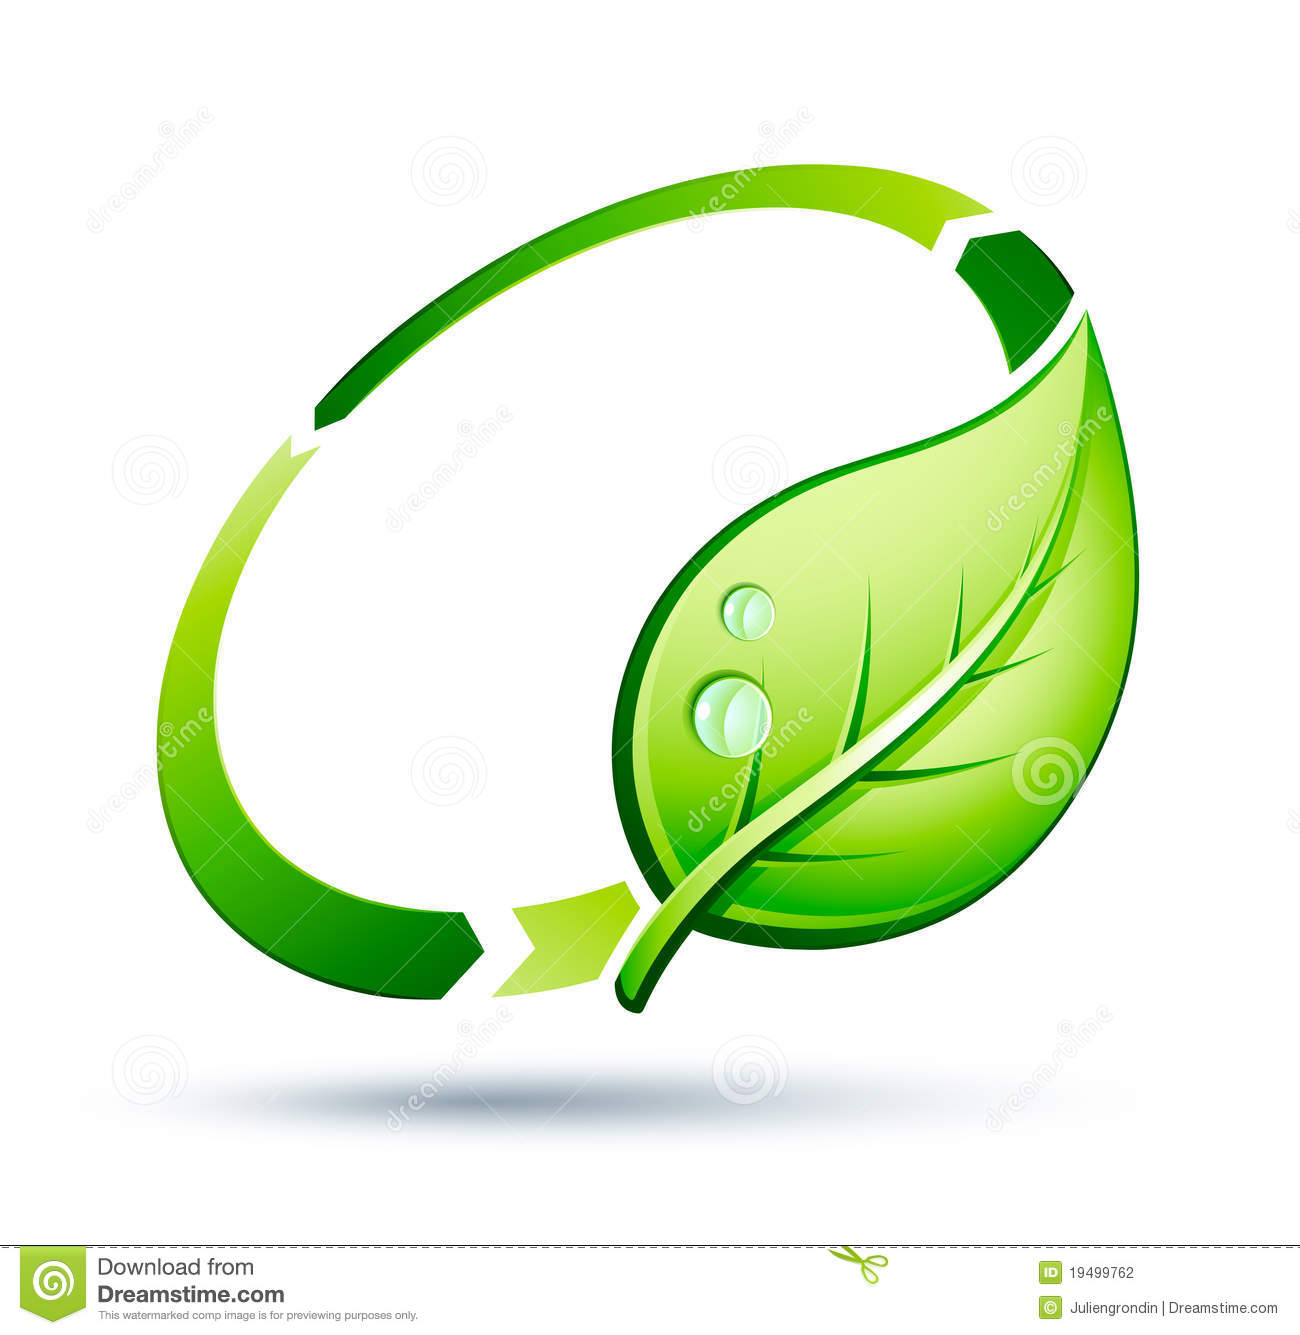 ... leaf and green circle suitable as a symbol or icon for recycling